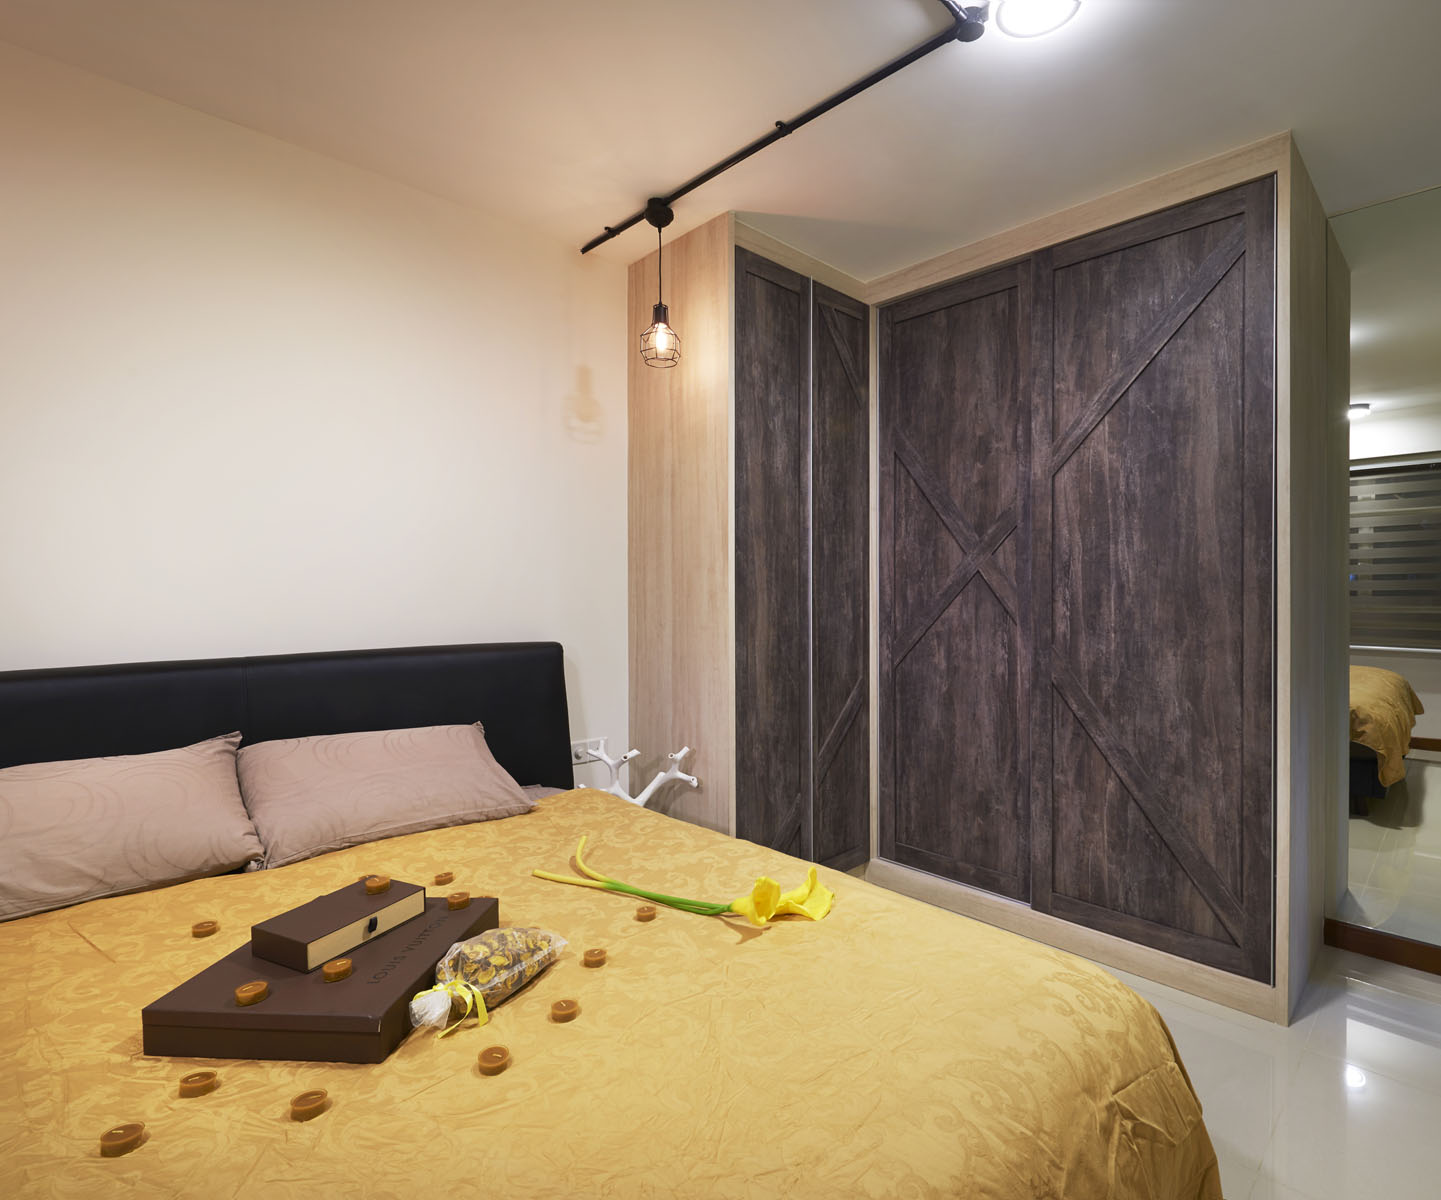 Bedroom Design Decor amp Renovation In Singapore